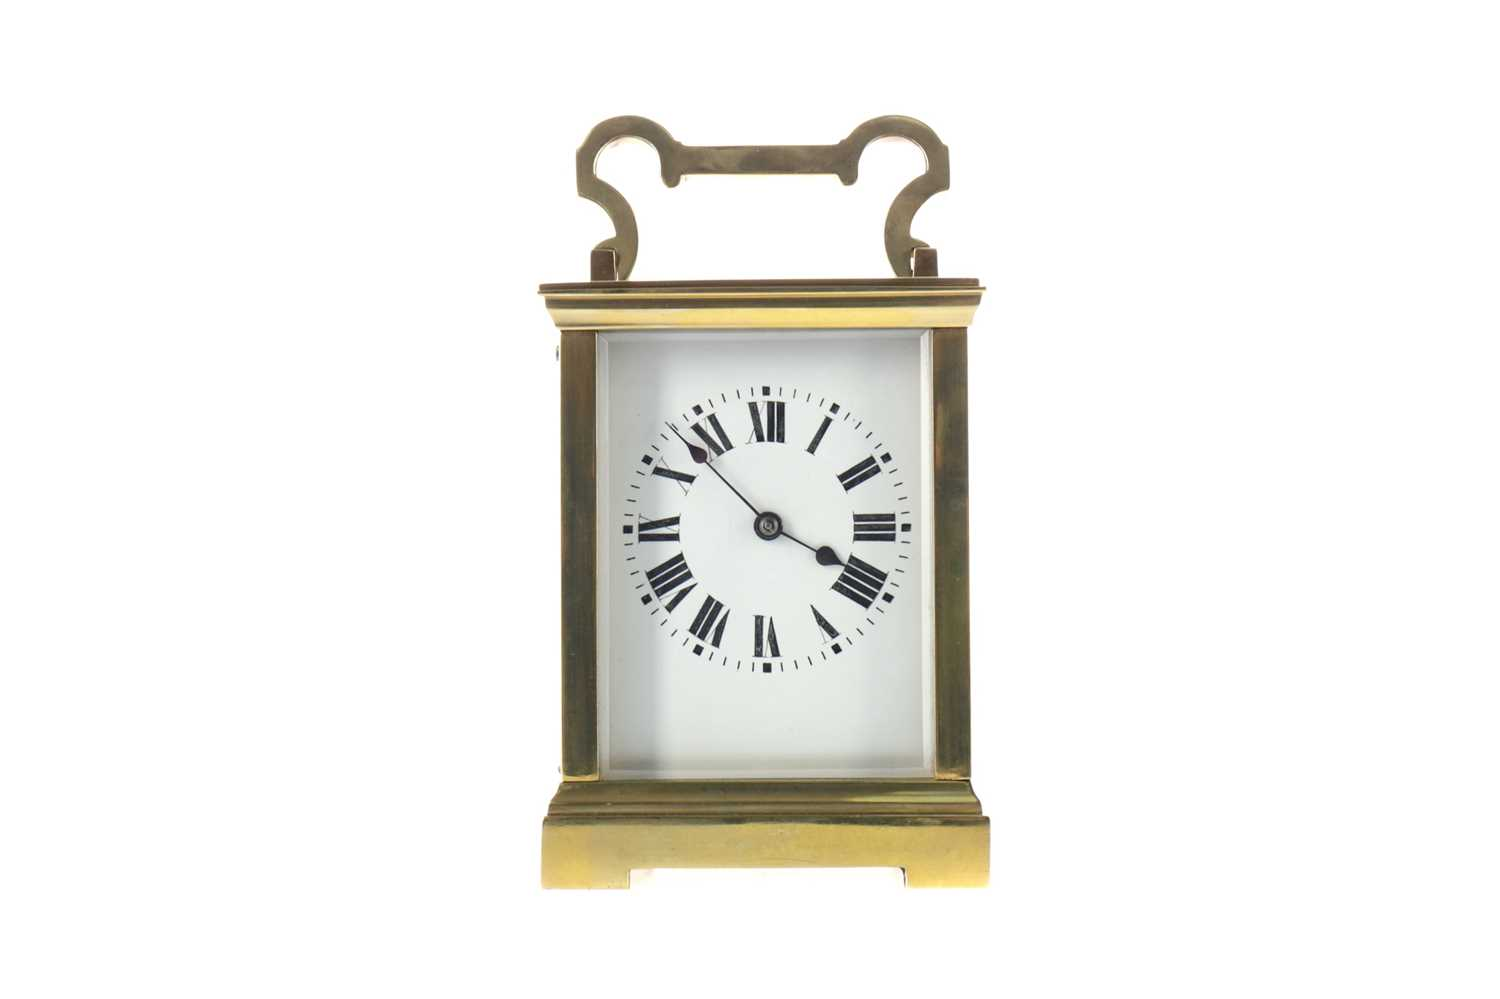 Lot 1758 - AN EARLY 20TH CENTURY CARRIAGE CLOCK